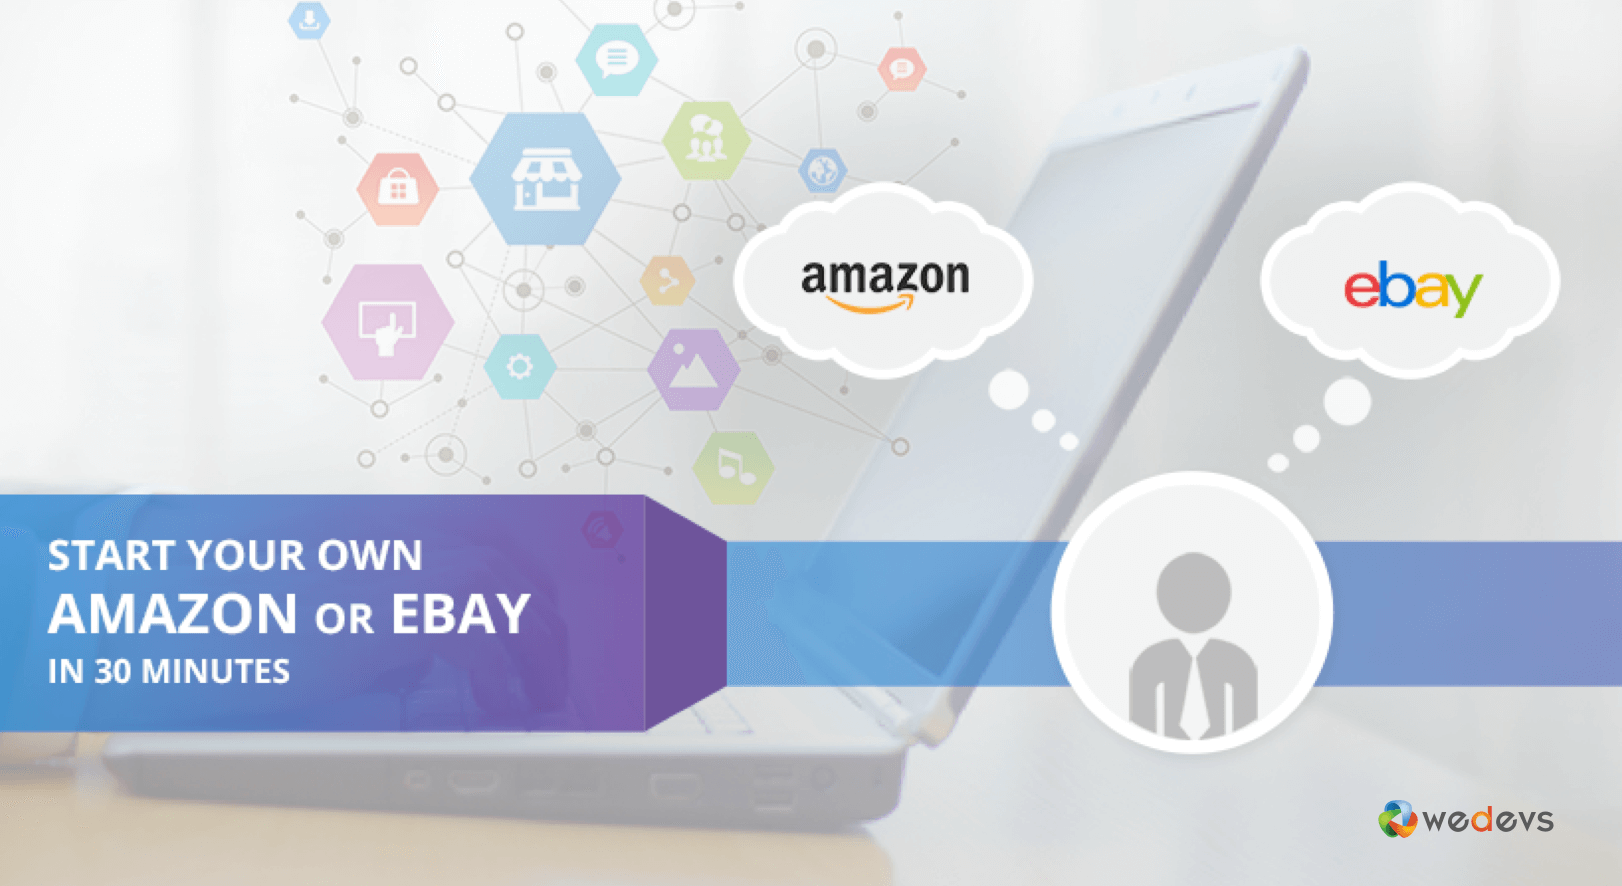 How to Create Amazon-like Marketplace in 30 Minutes using WooCommerce